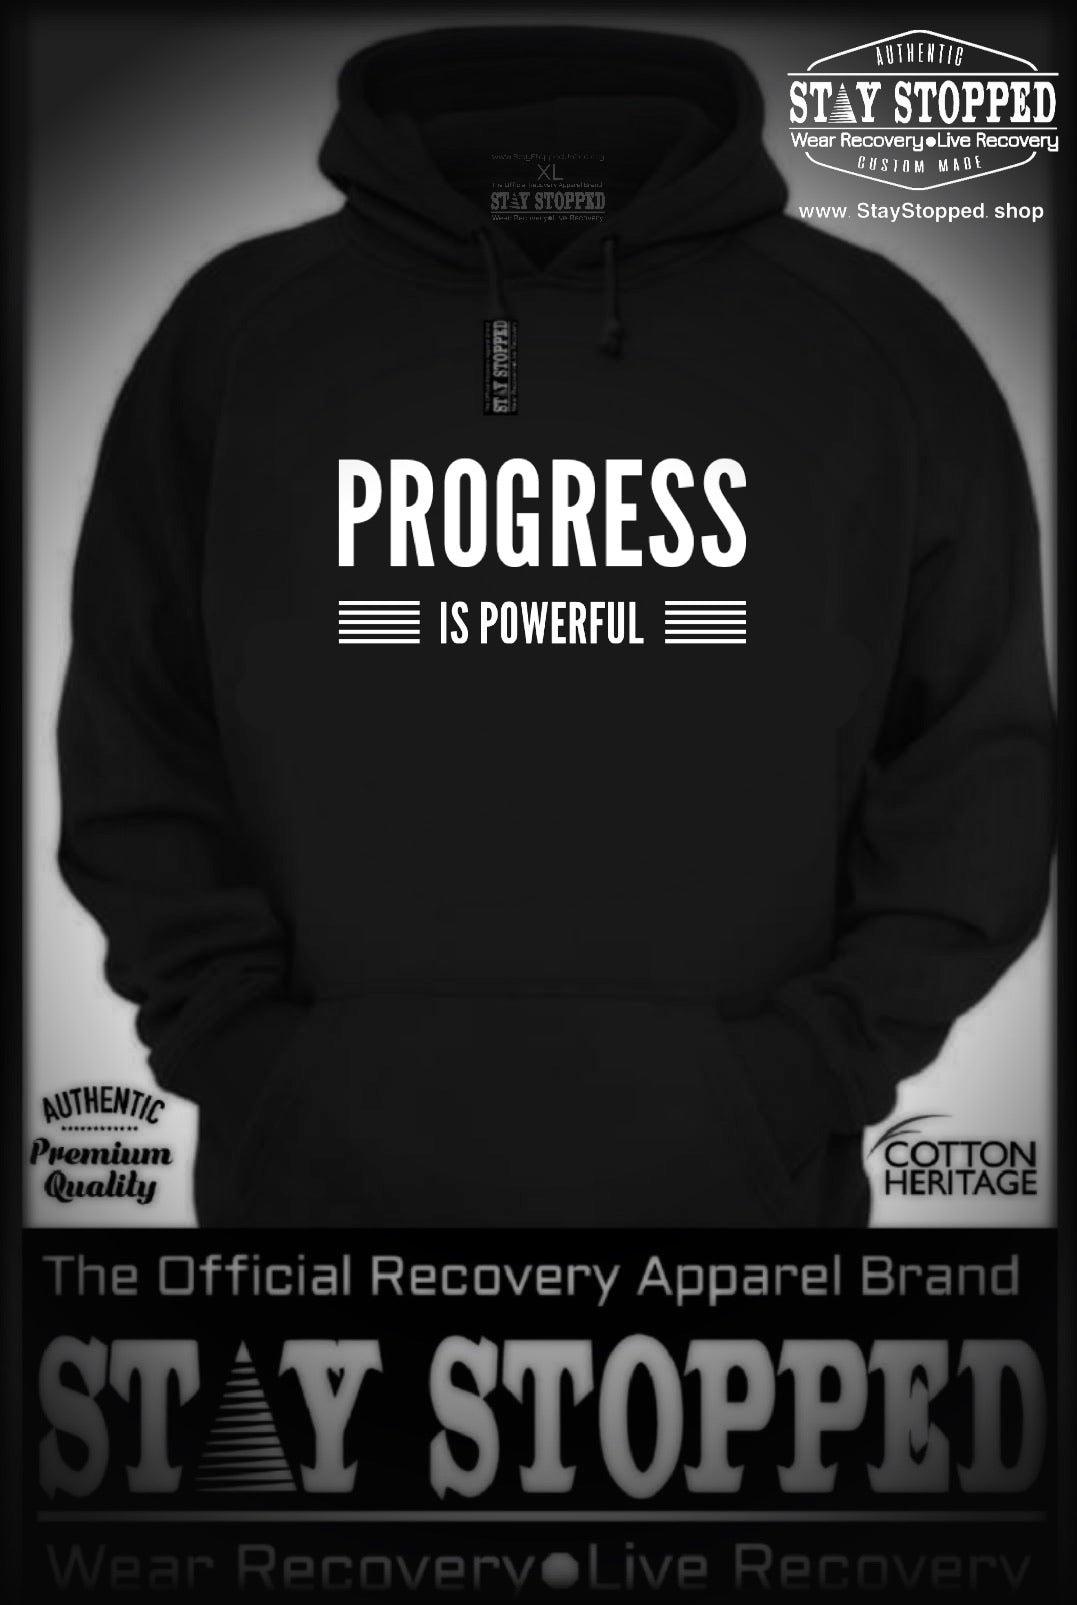 PROGRESS IS POWER Stay Stopped Heavyweight HOODIES